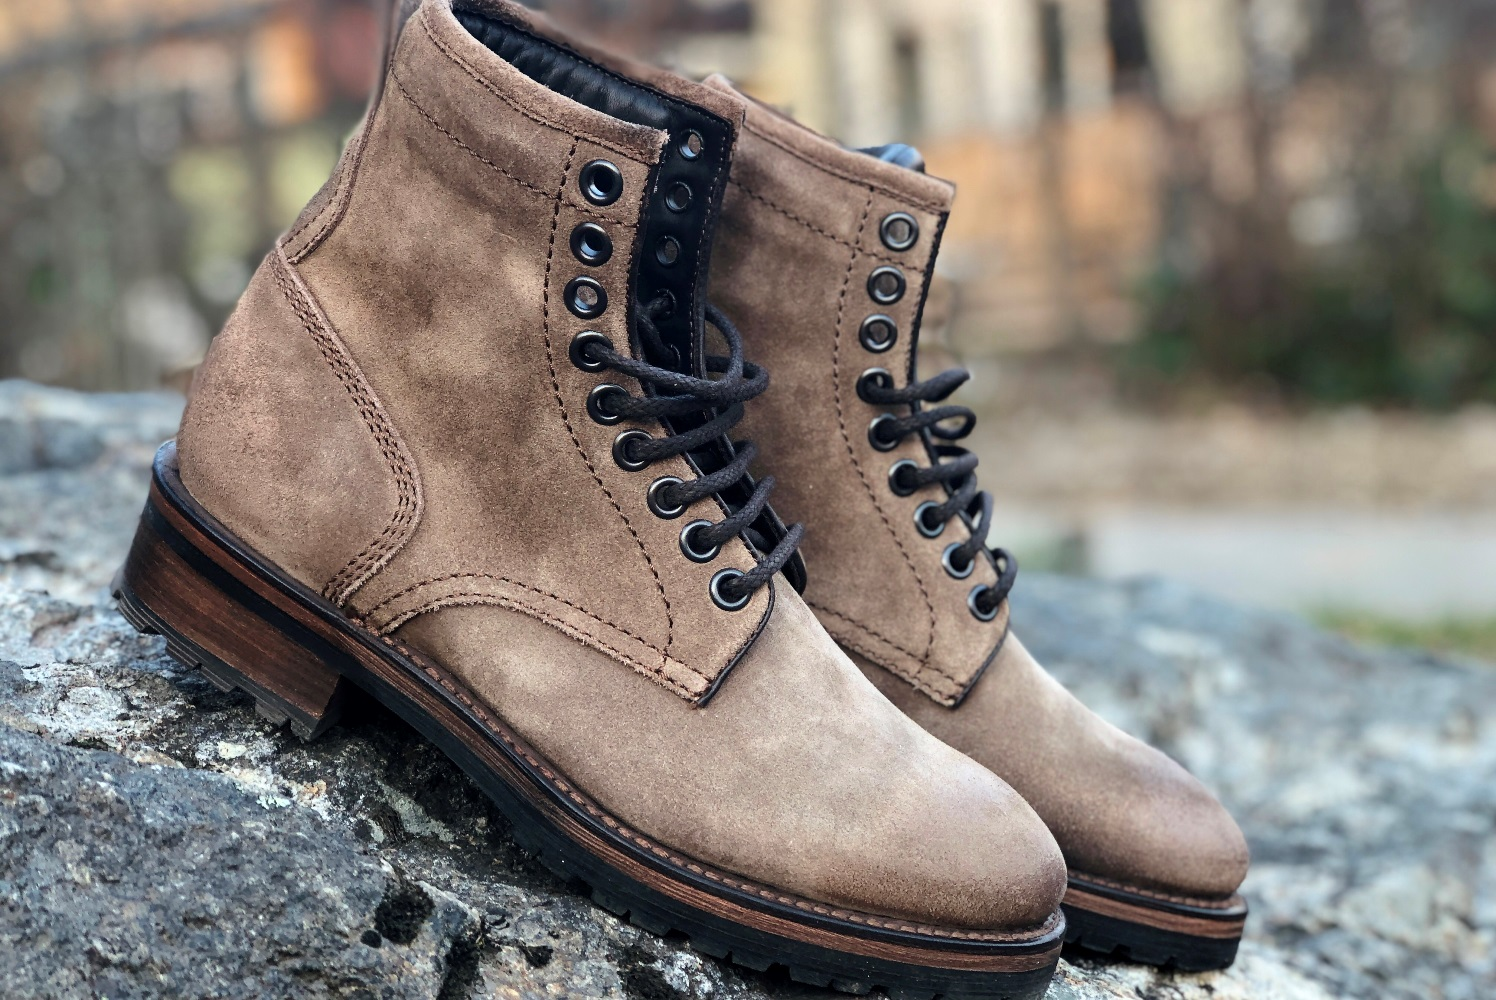 PROJECT TWLV ROYAL LOGGER BOOT IN SAND SUEDE REVIEW